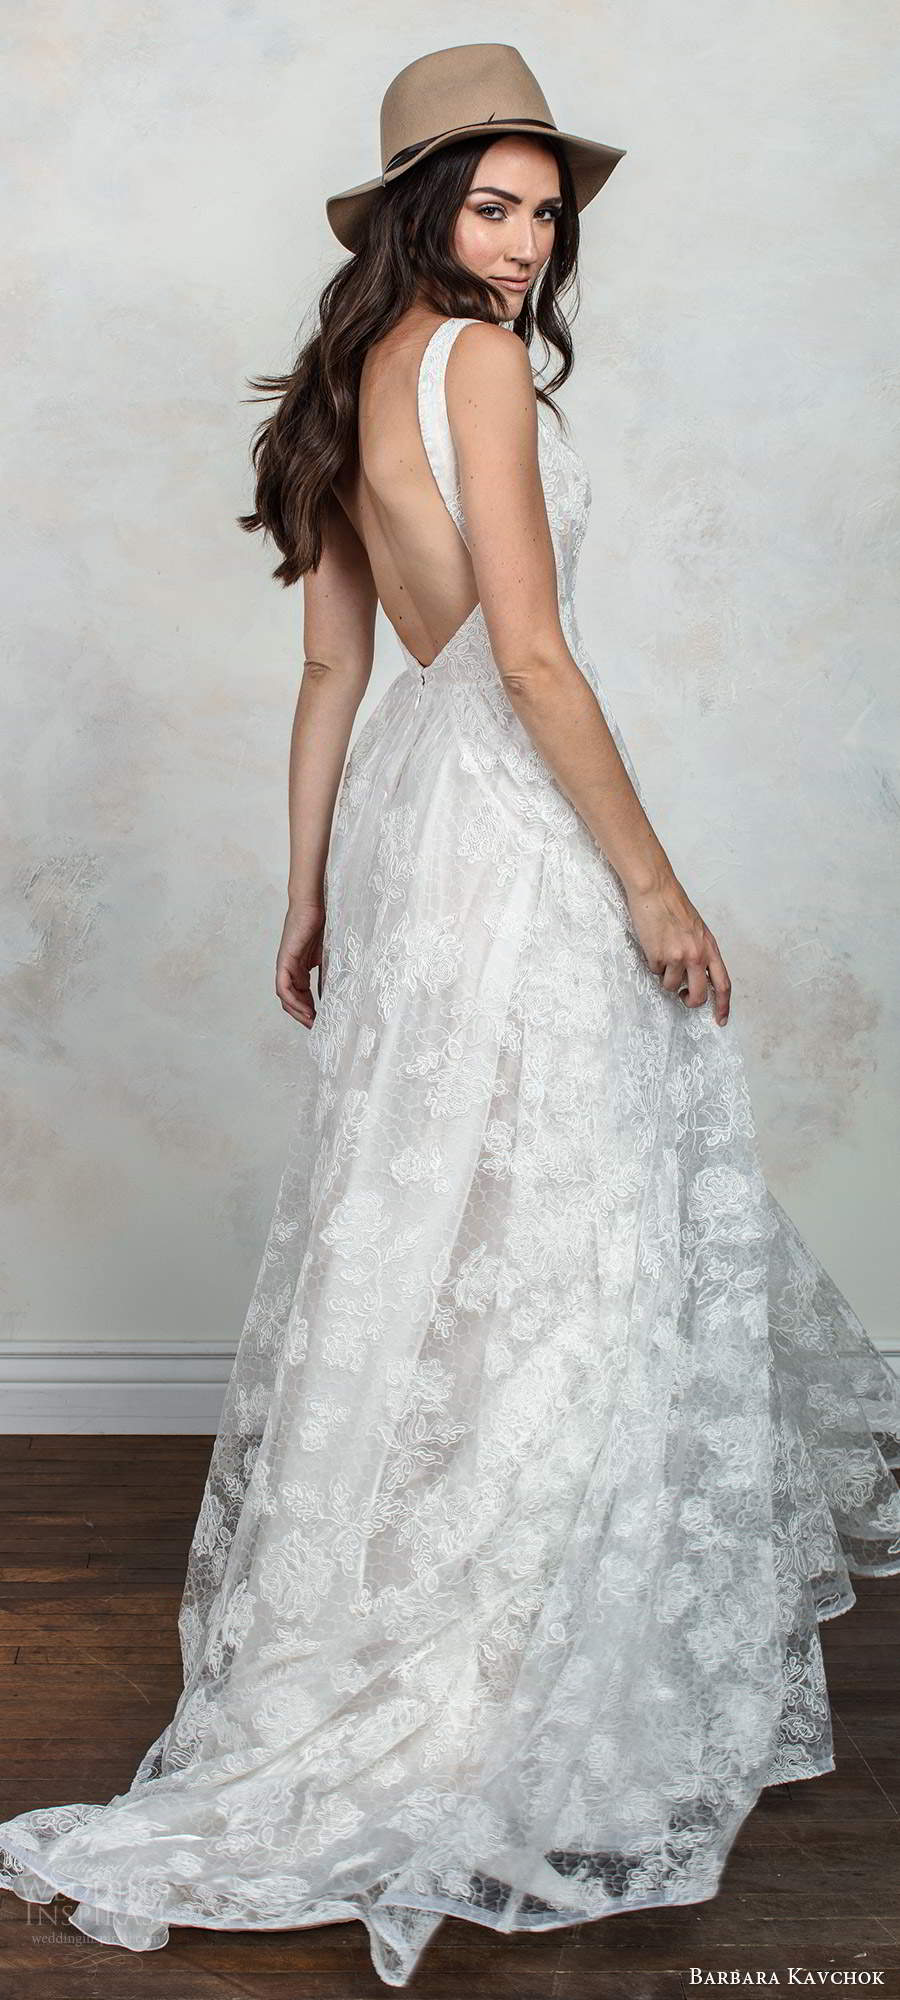 barbara kavchok fall 2020 bridal sleeveless thick straps plunging v neckline fully embellished lace a line ball gown wedding dress low back chapel train  (4) bv